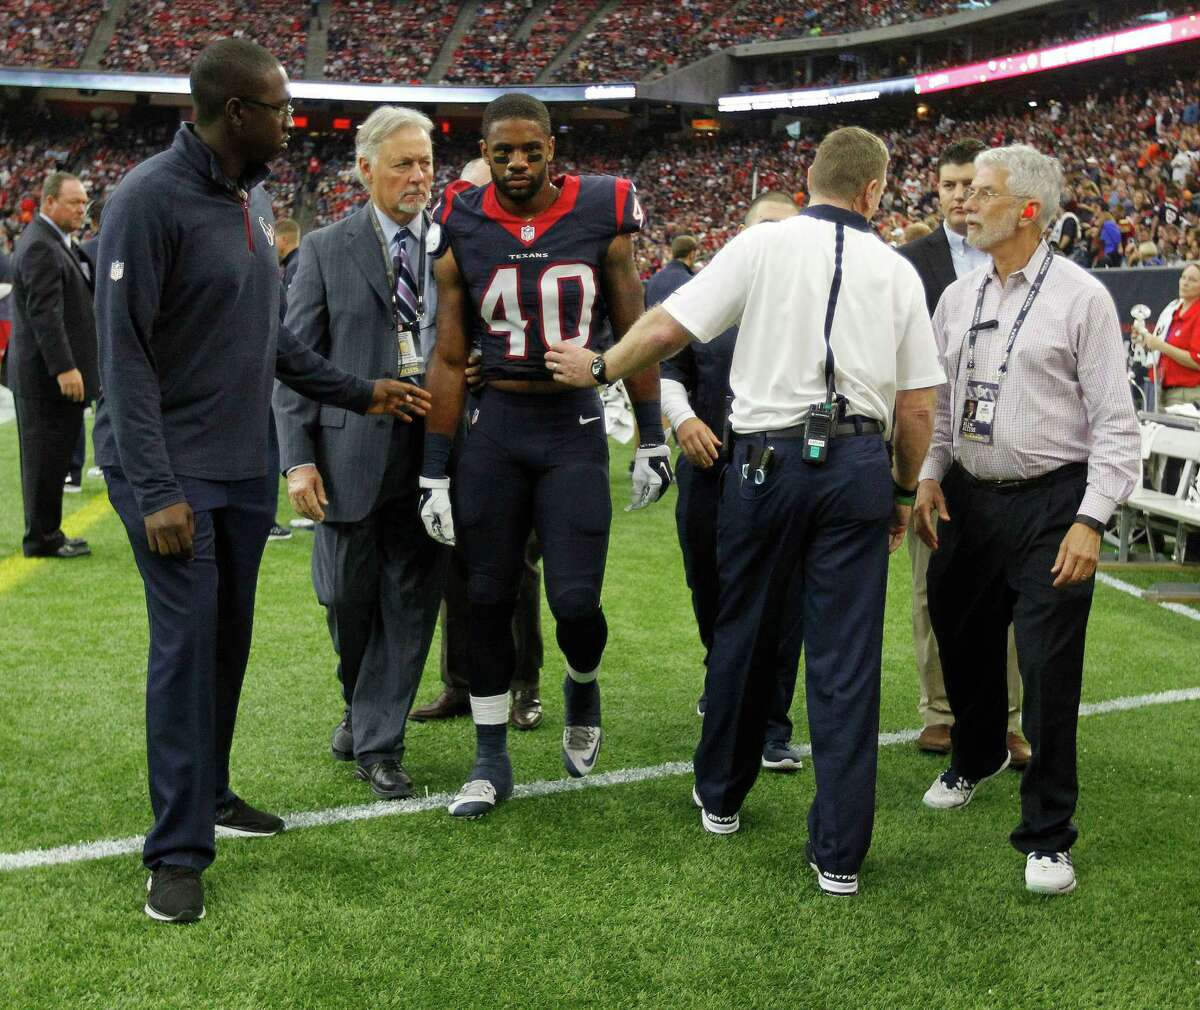 Dr. Arthur Day helps to escort Kurtis Drummond (40) back to the locker room after an injury during the second quarter of an NFL game at NRG Stadium on Sunday, Nov. 1, 2015, in Houston.